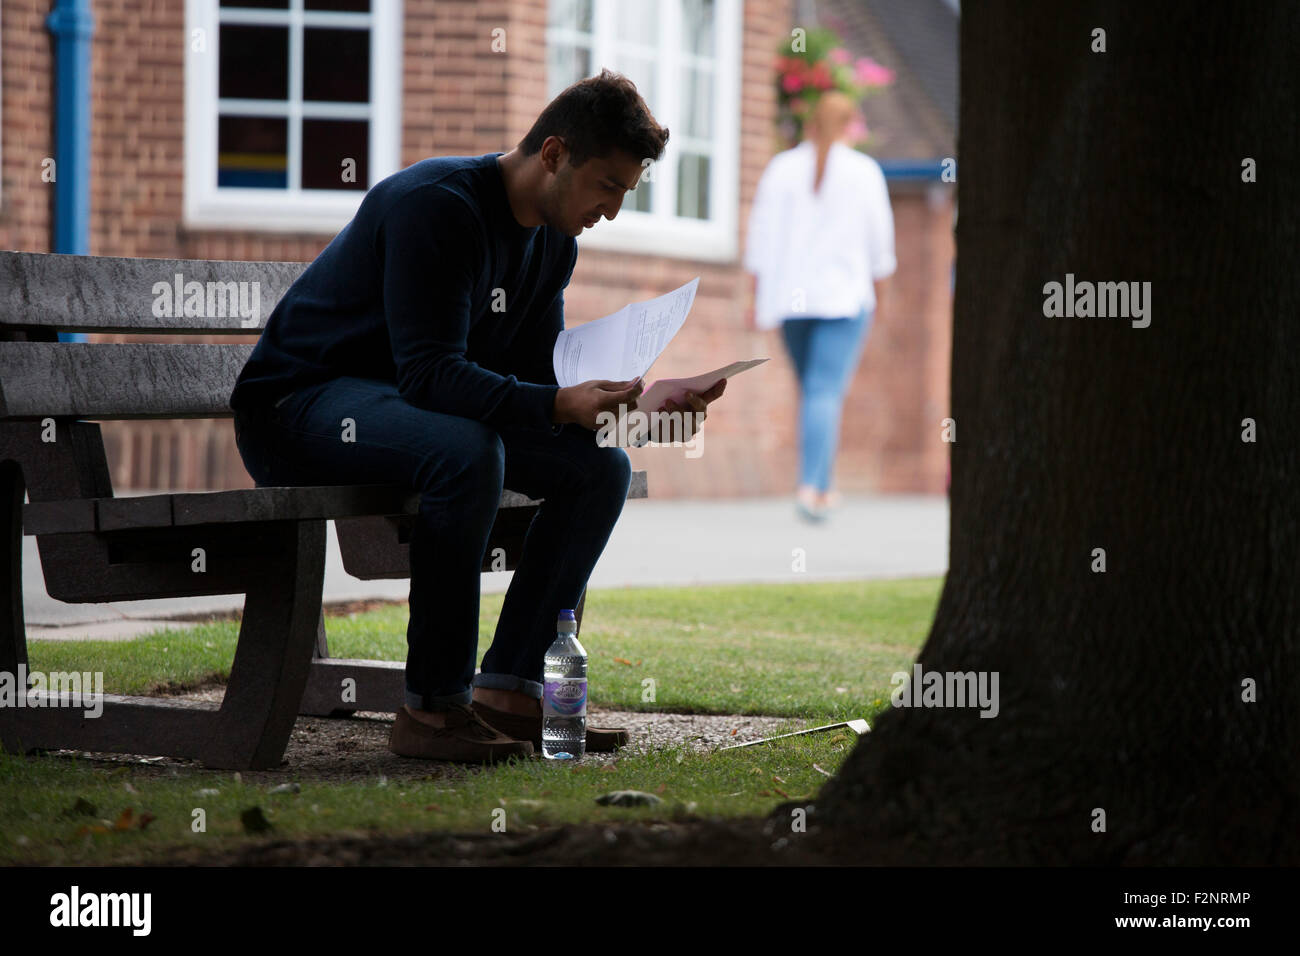 A student reads his A Level results after they have just been announced - Stock Image